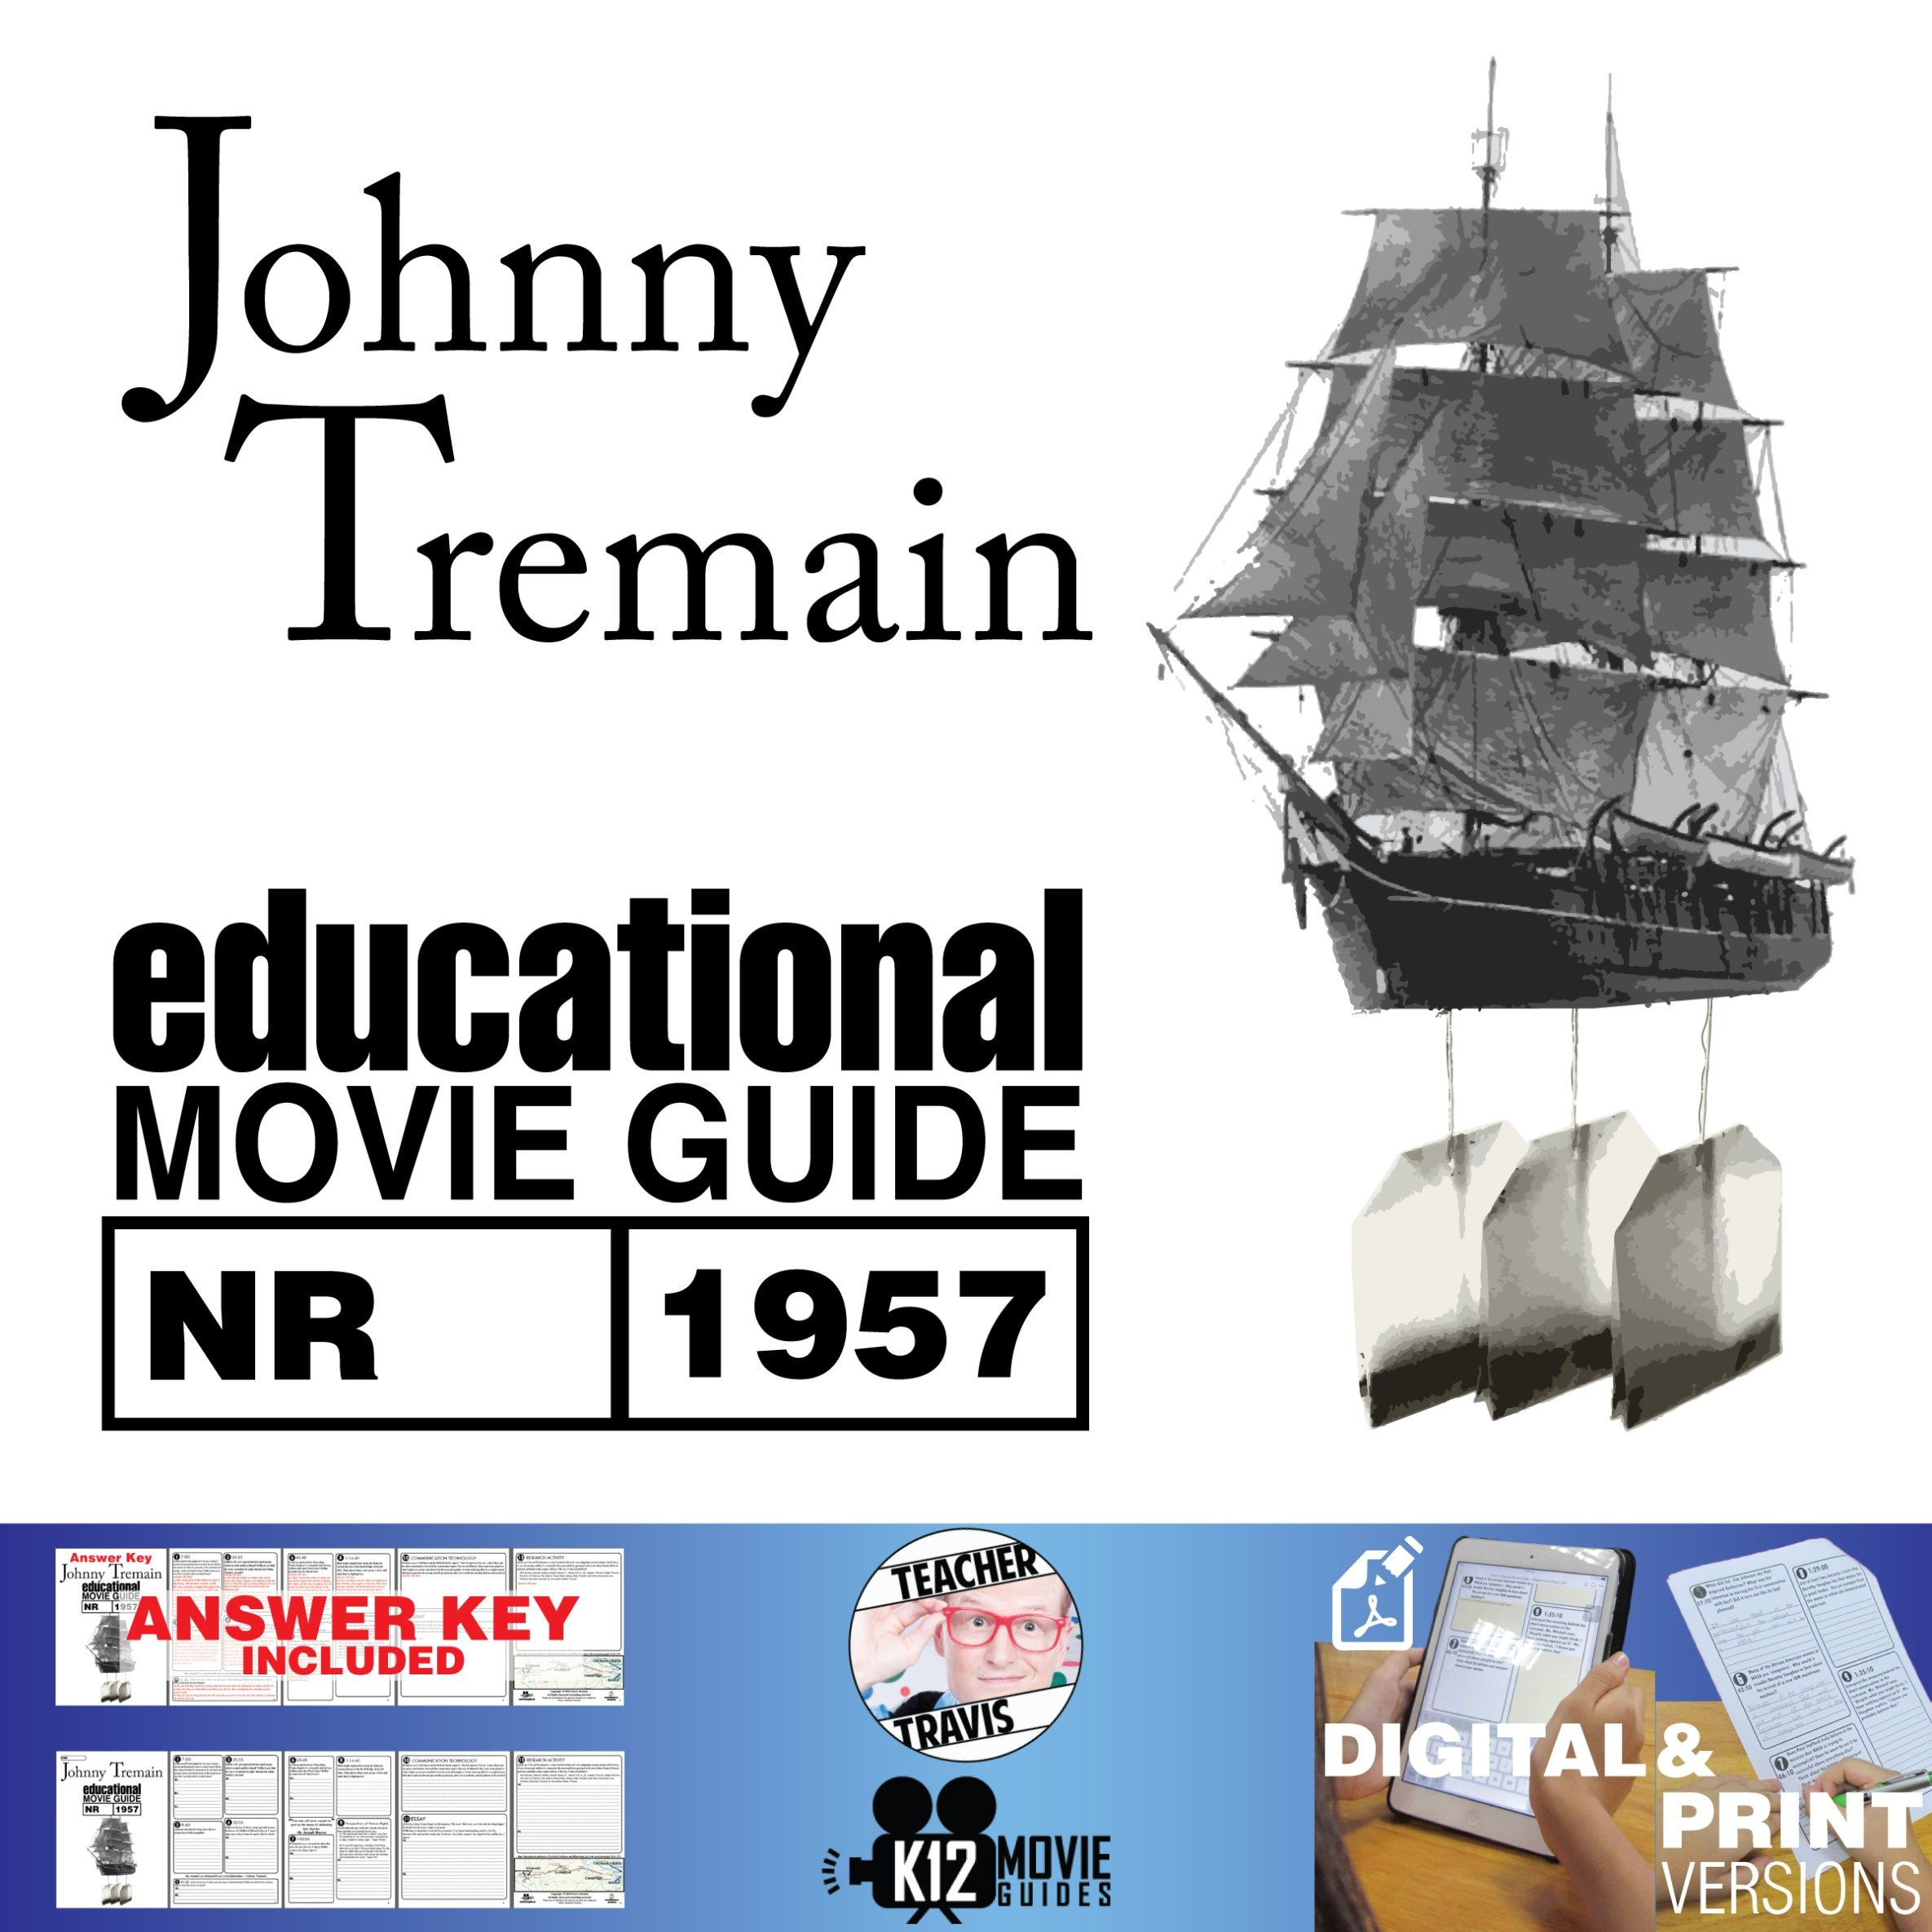 Johnny Tremain Movie Guide